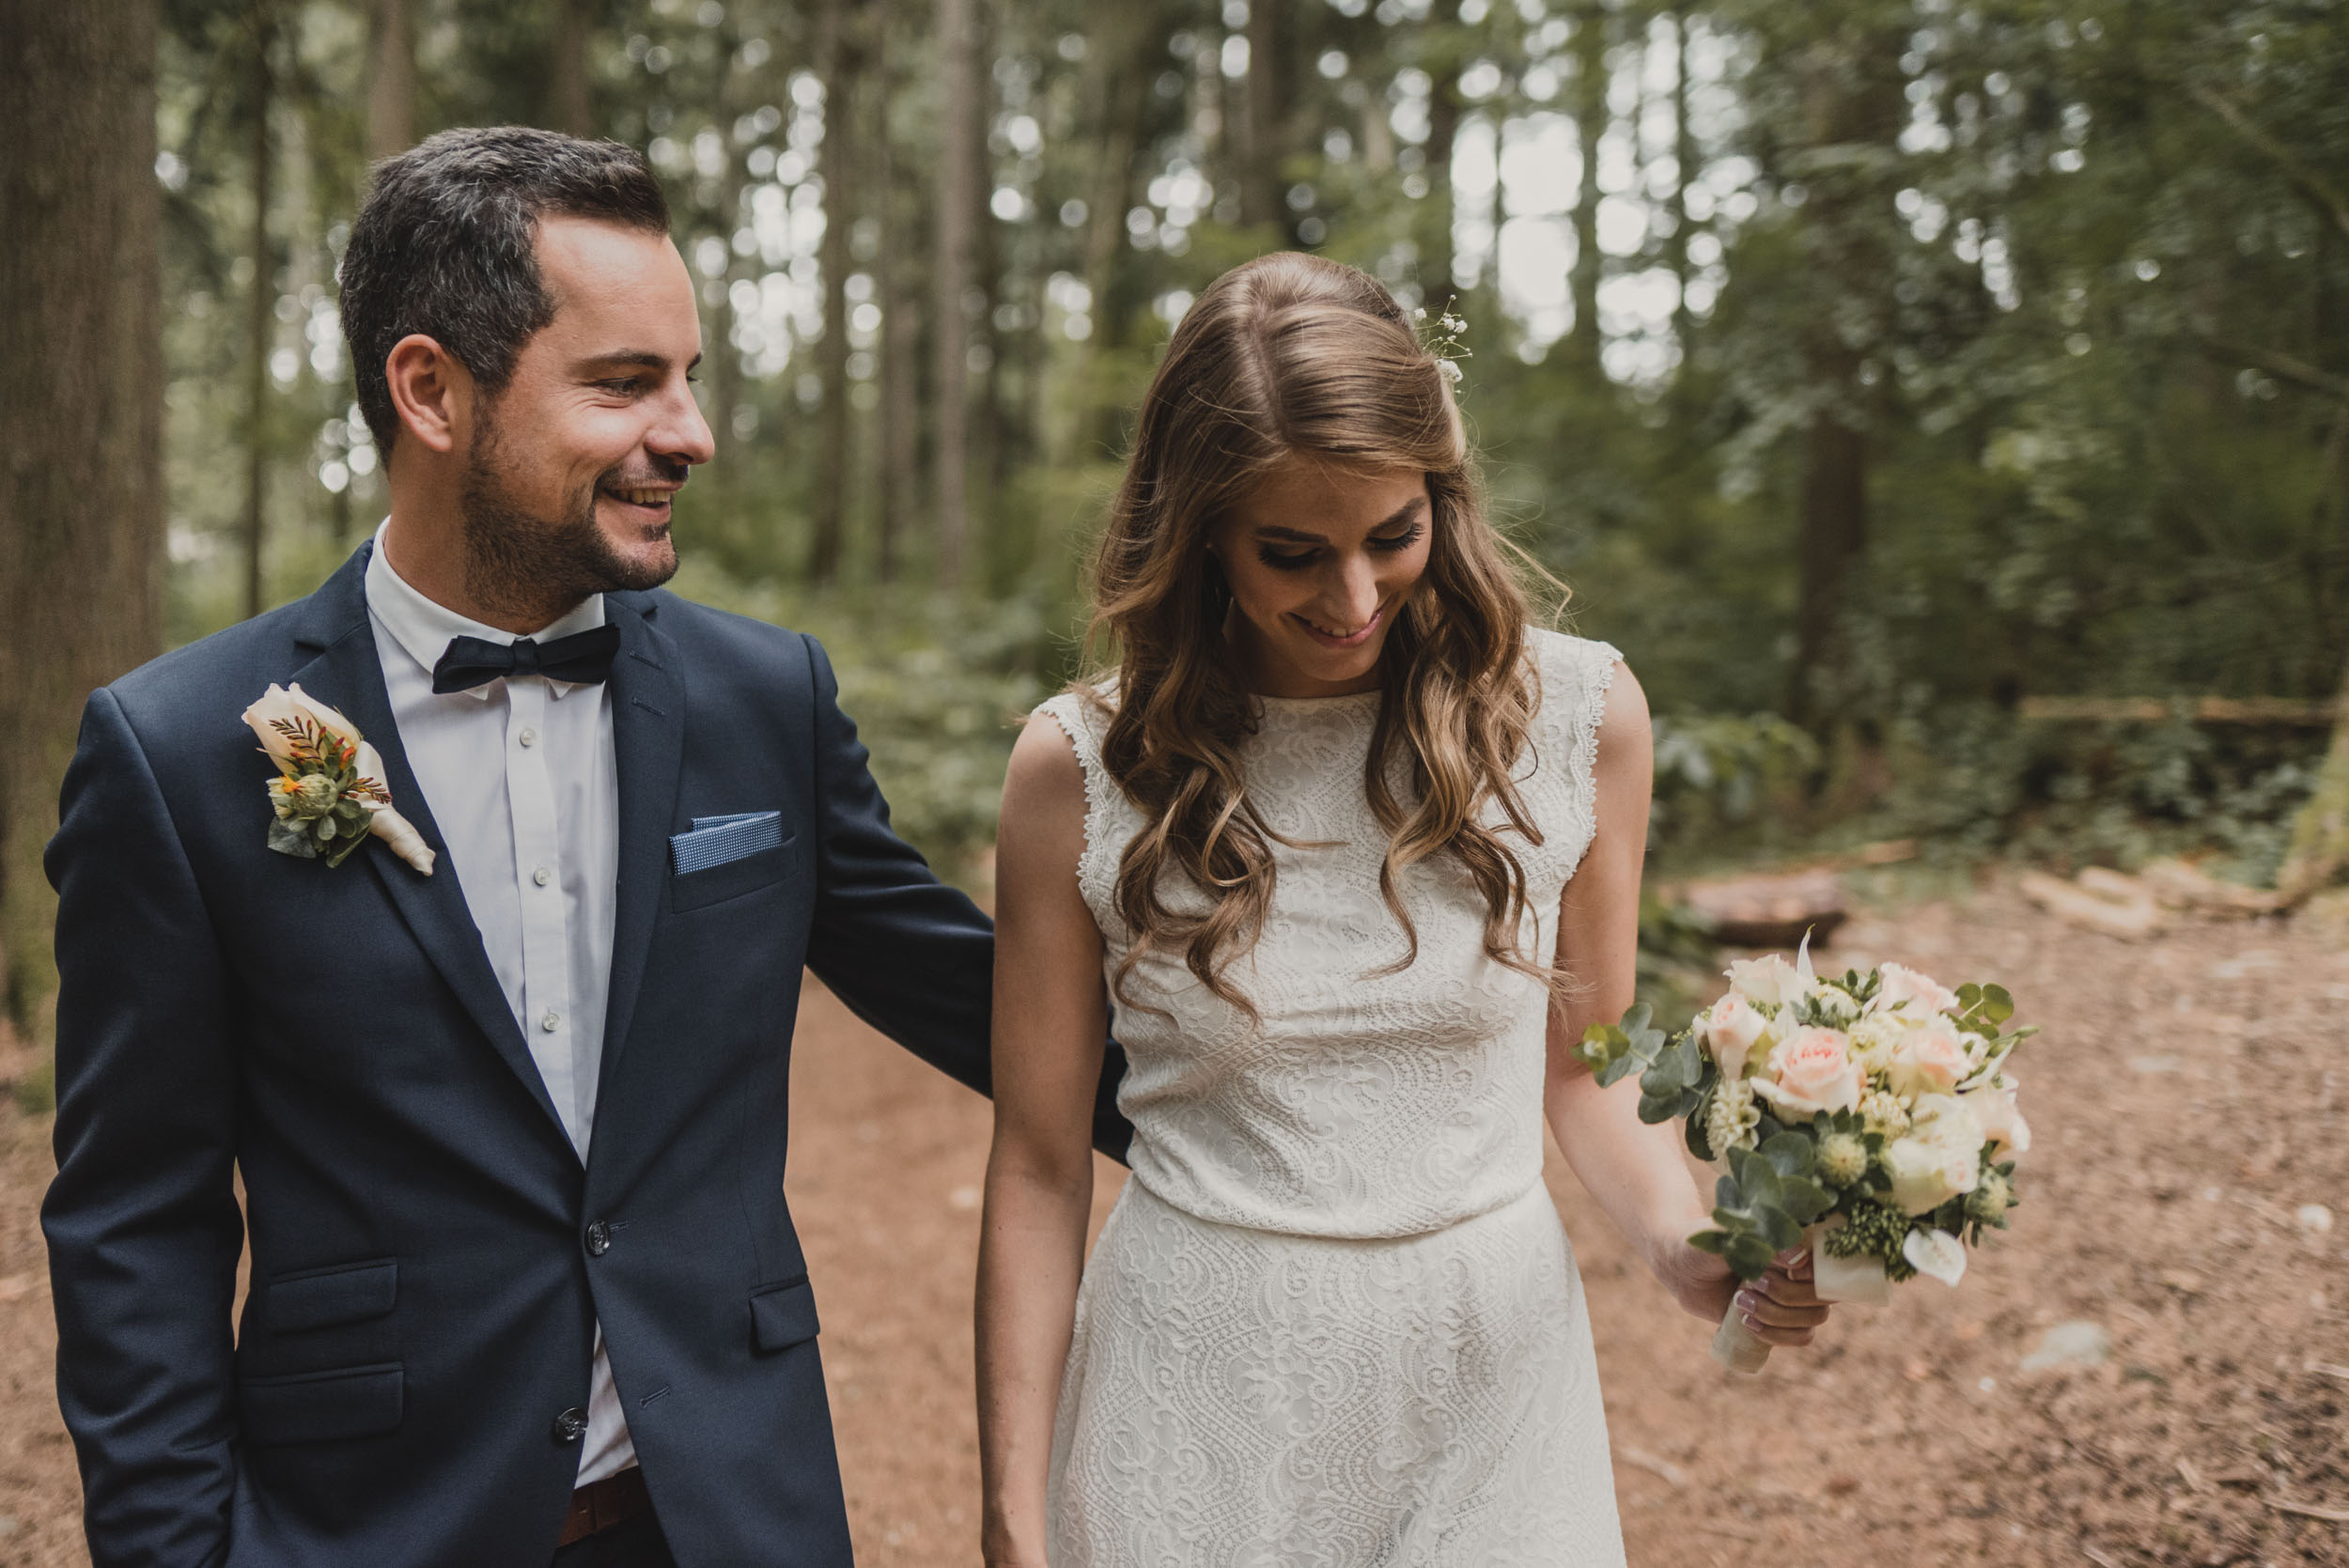 Bride and Groom walk through forest trail